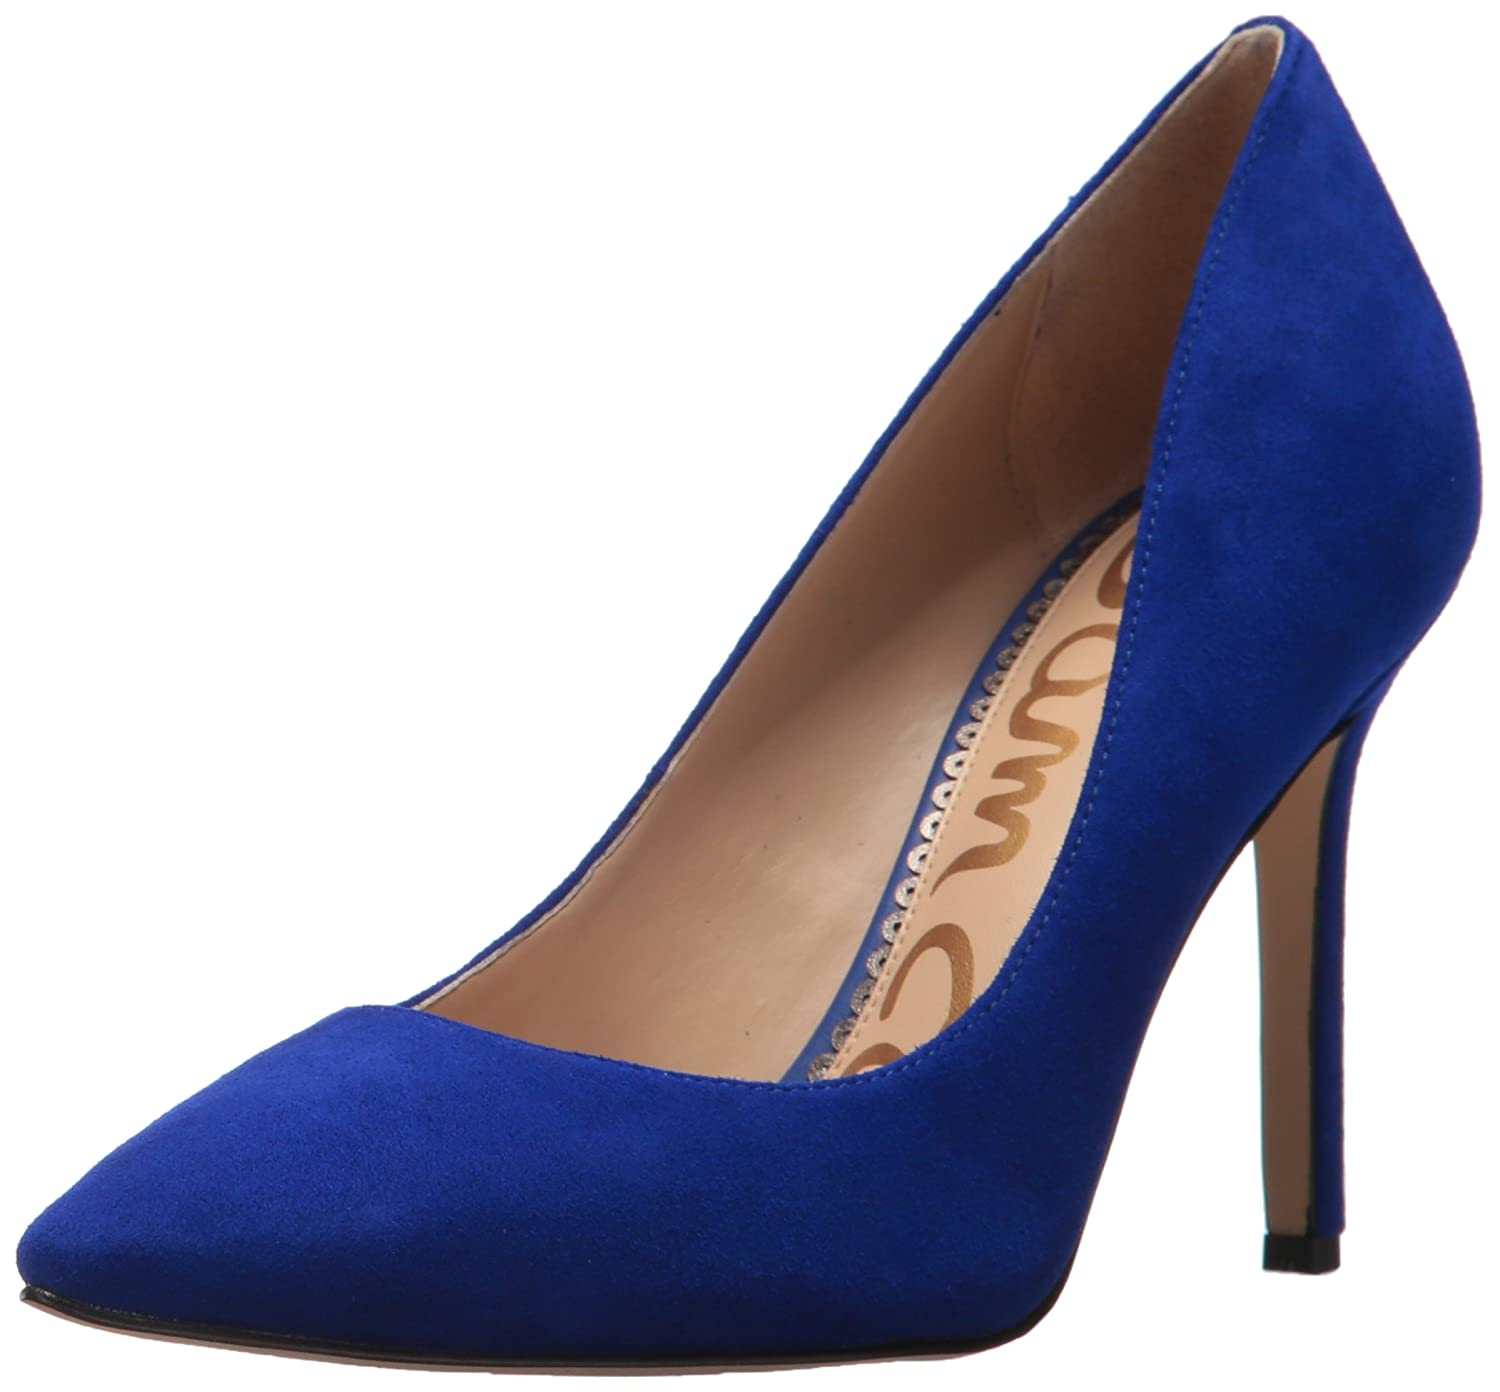 Sam Edelman Women's Hazel Pump B071XWT5NM 7 B(M) US|Blue Iris